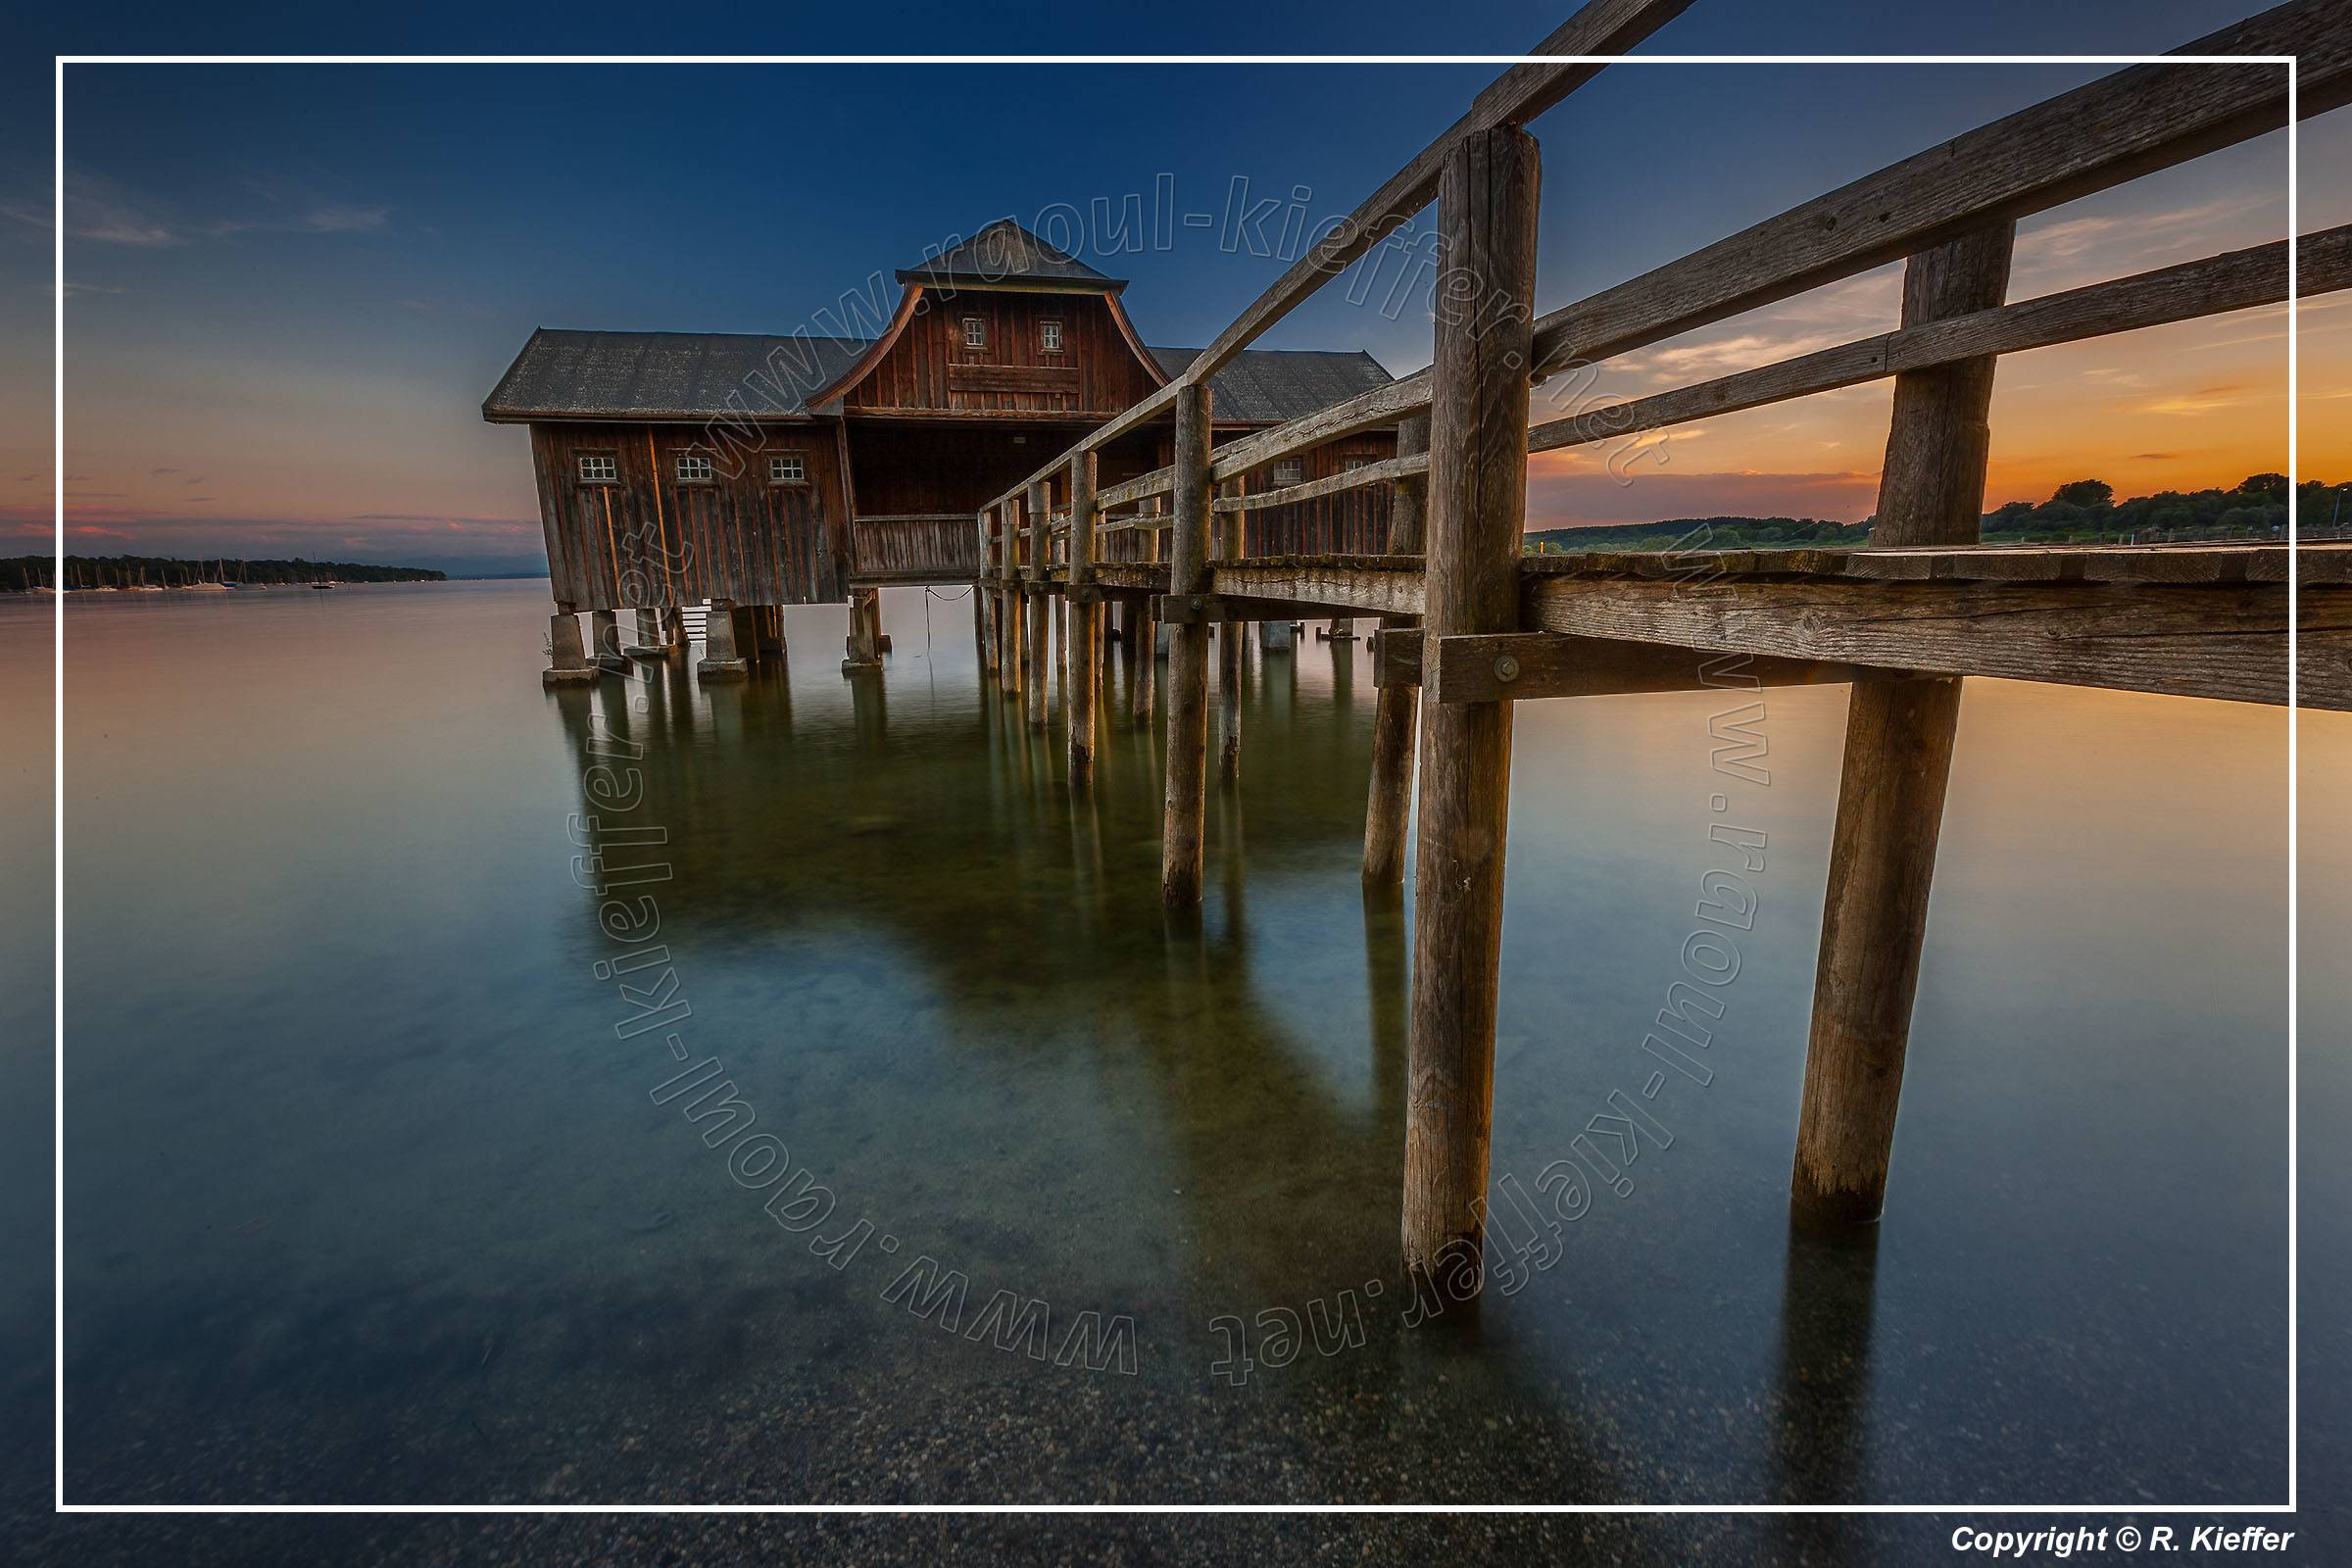 Inning Am Ammersee